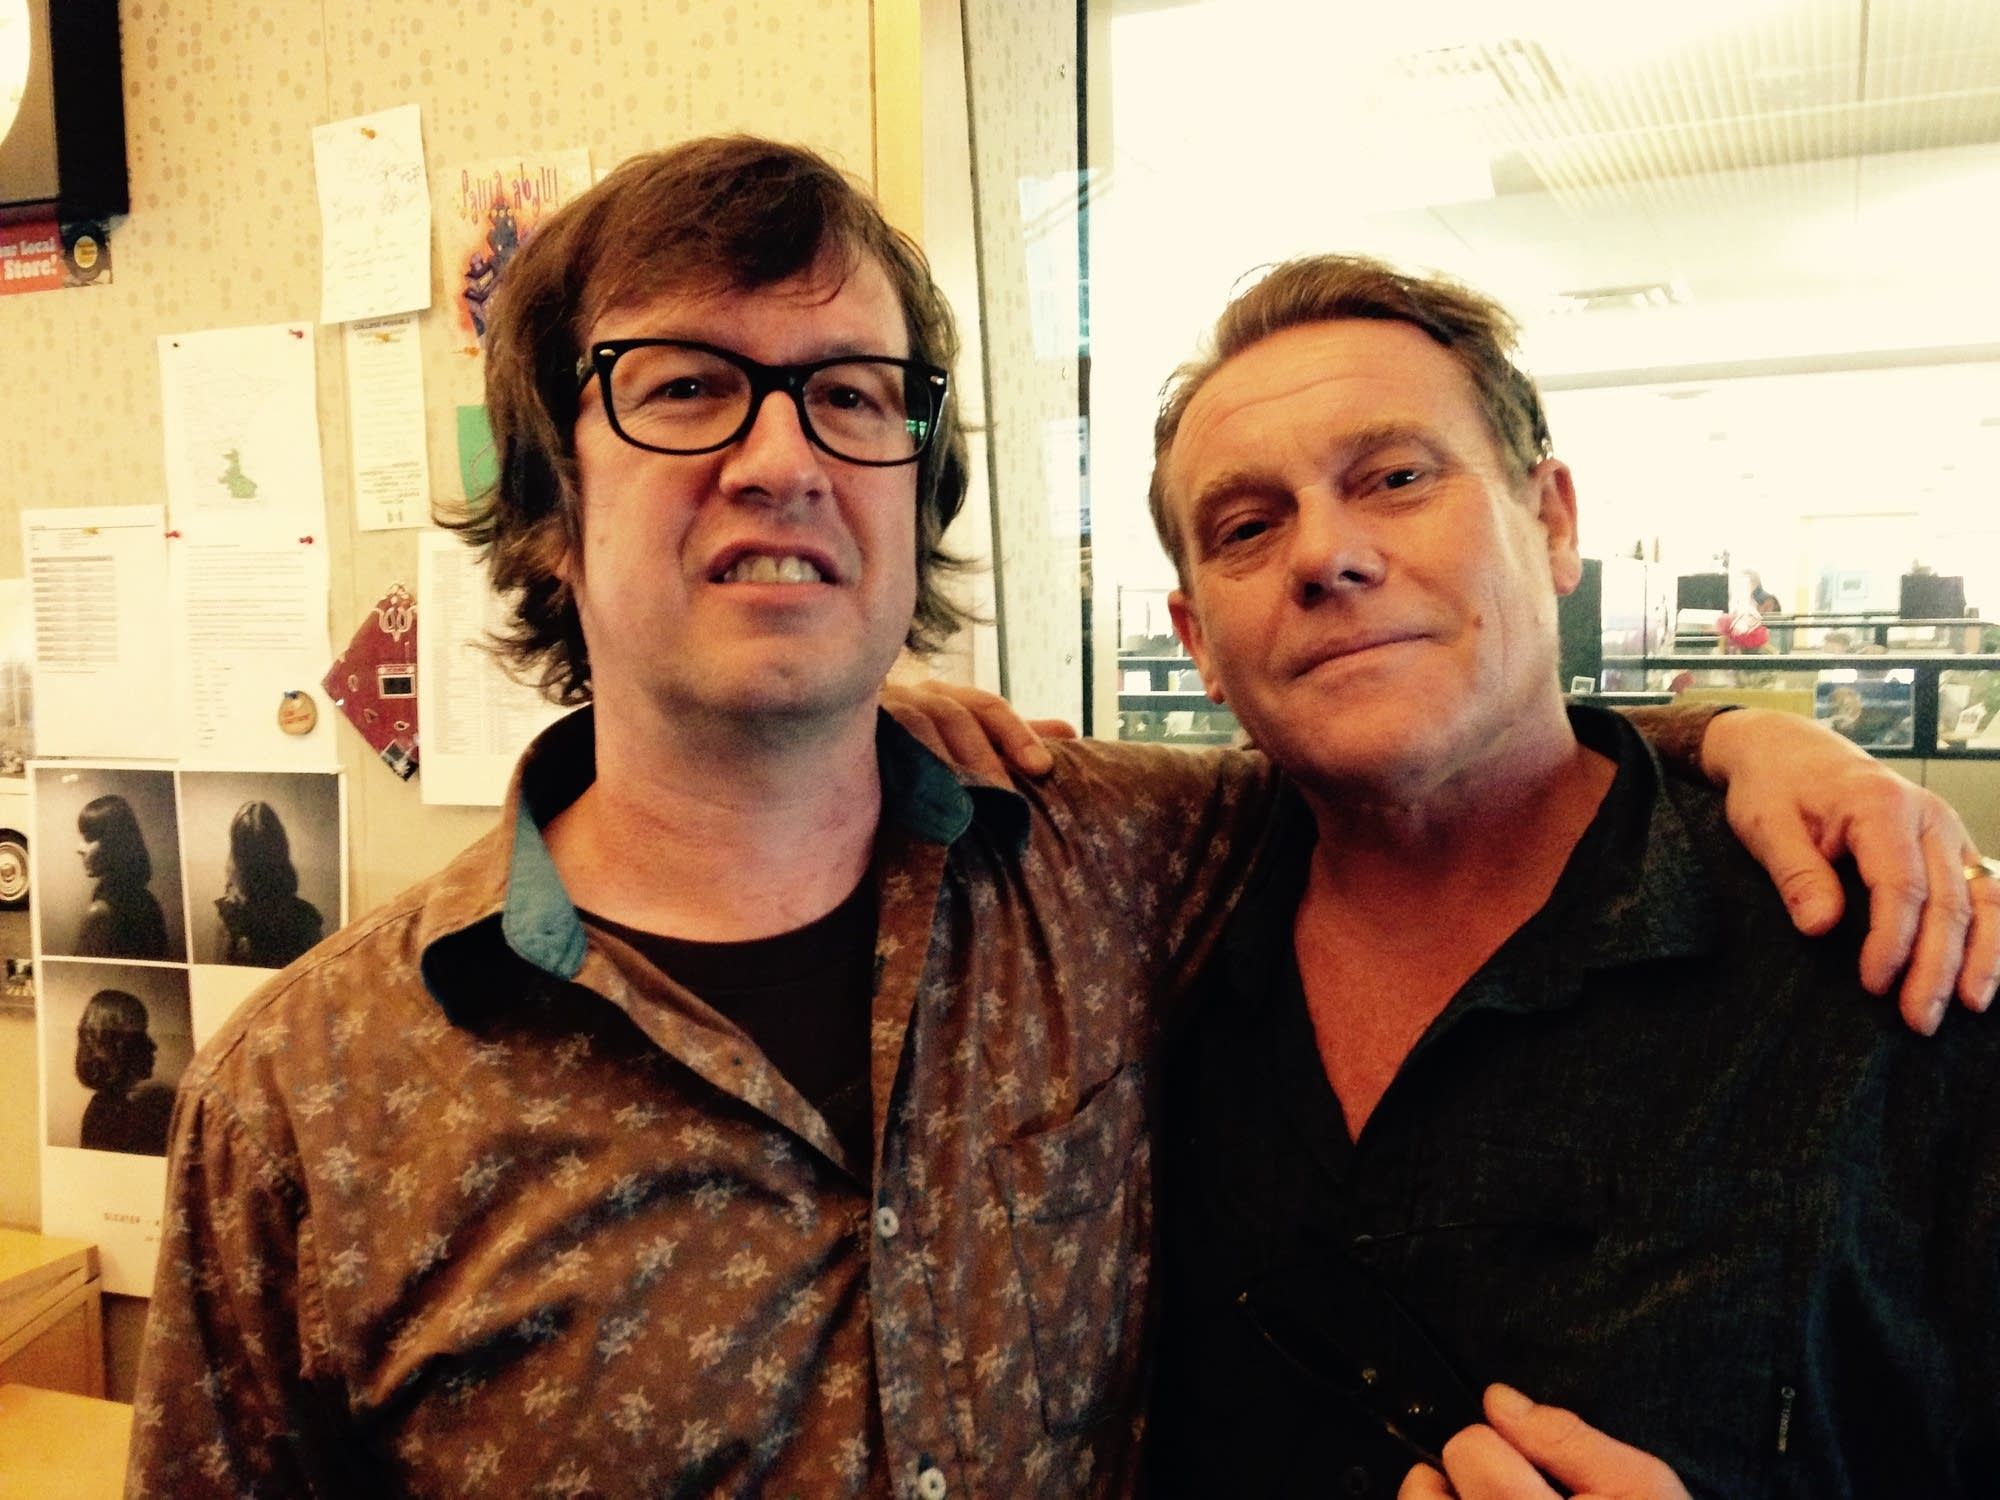 Bill DeVille and Dave Wakeling